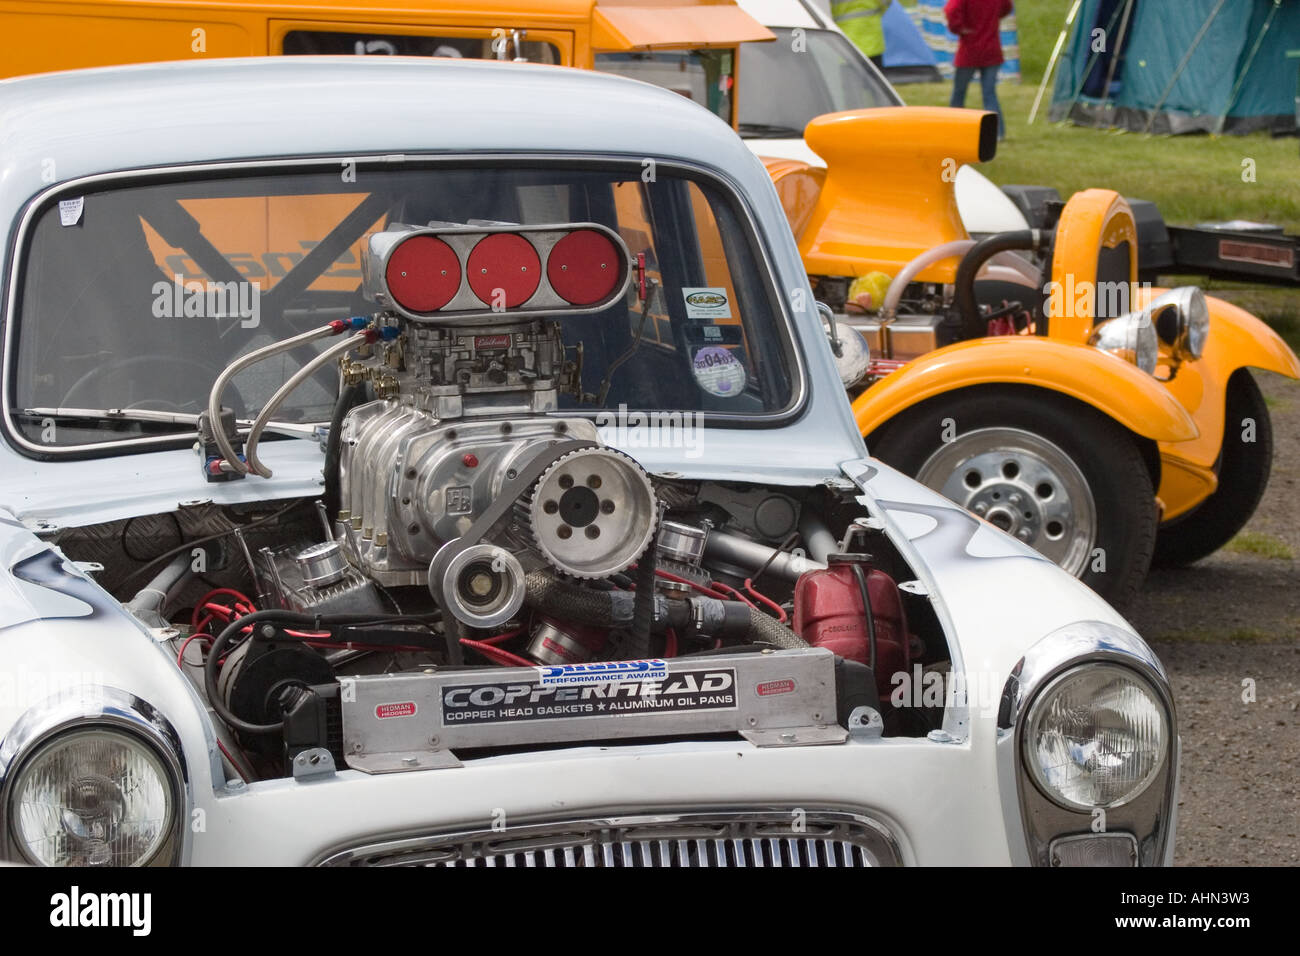 hight resolution of supercharged ford anglia popular drag car with v8 supercharged engine sticking out of bonnet